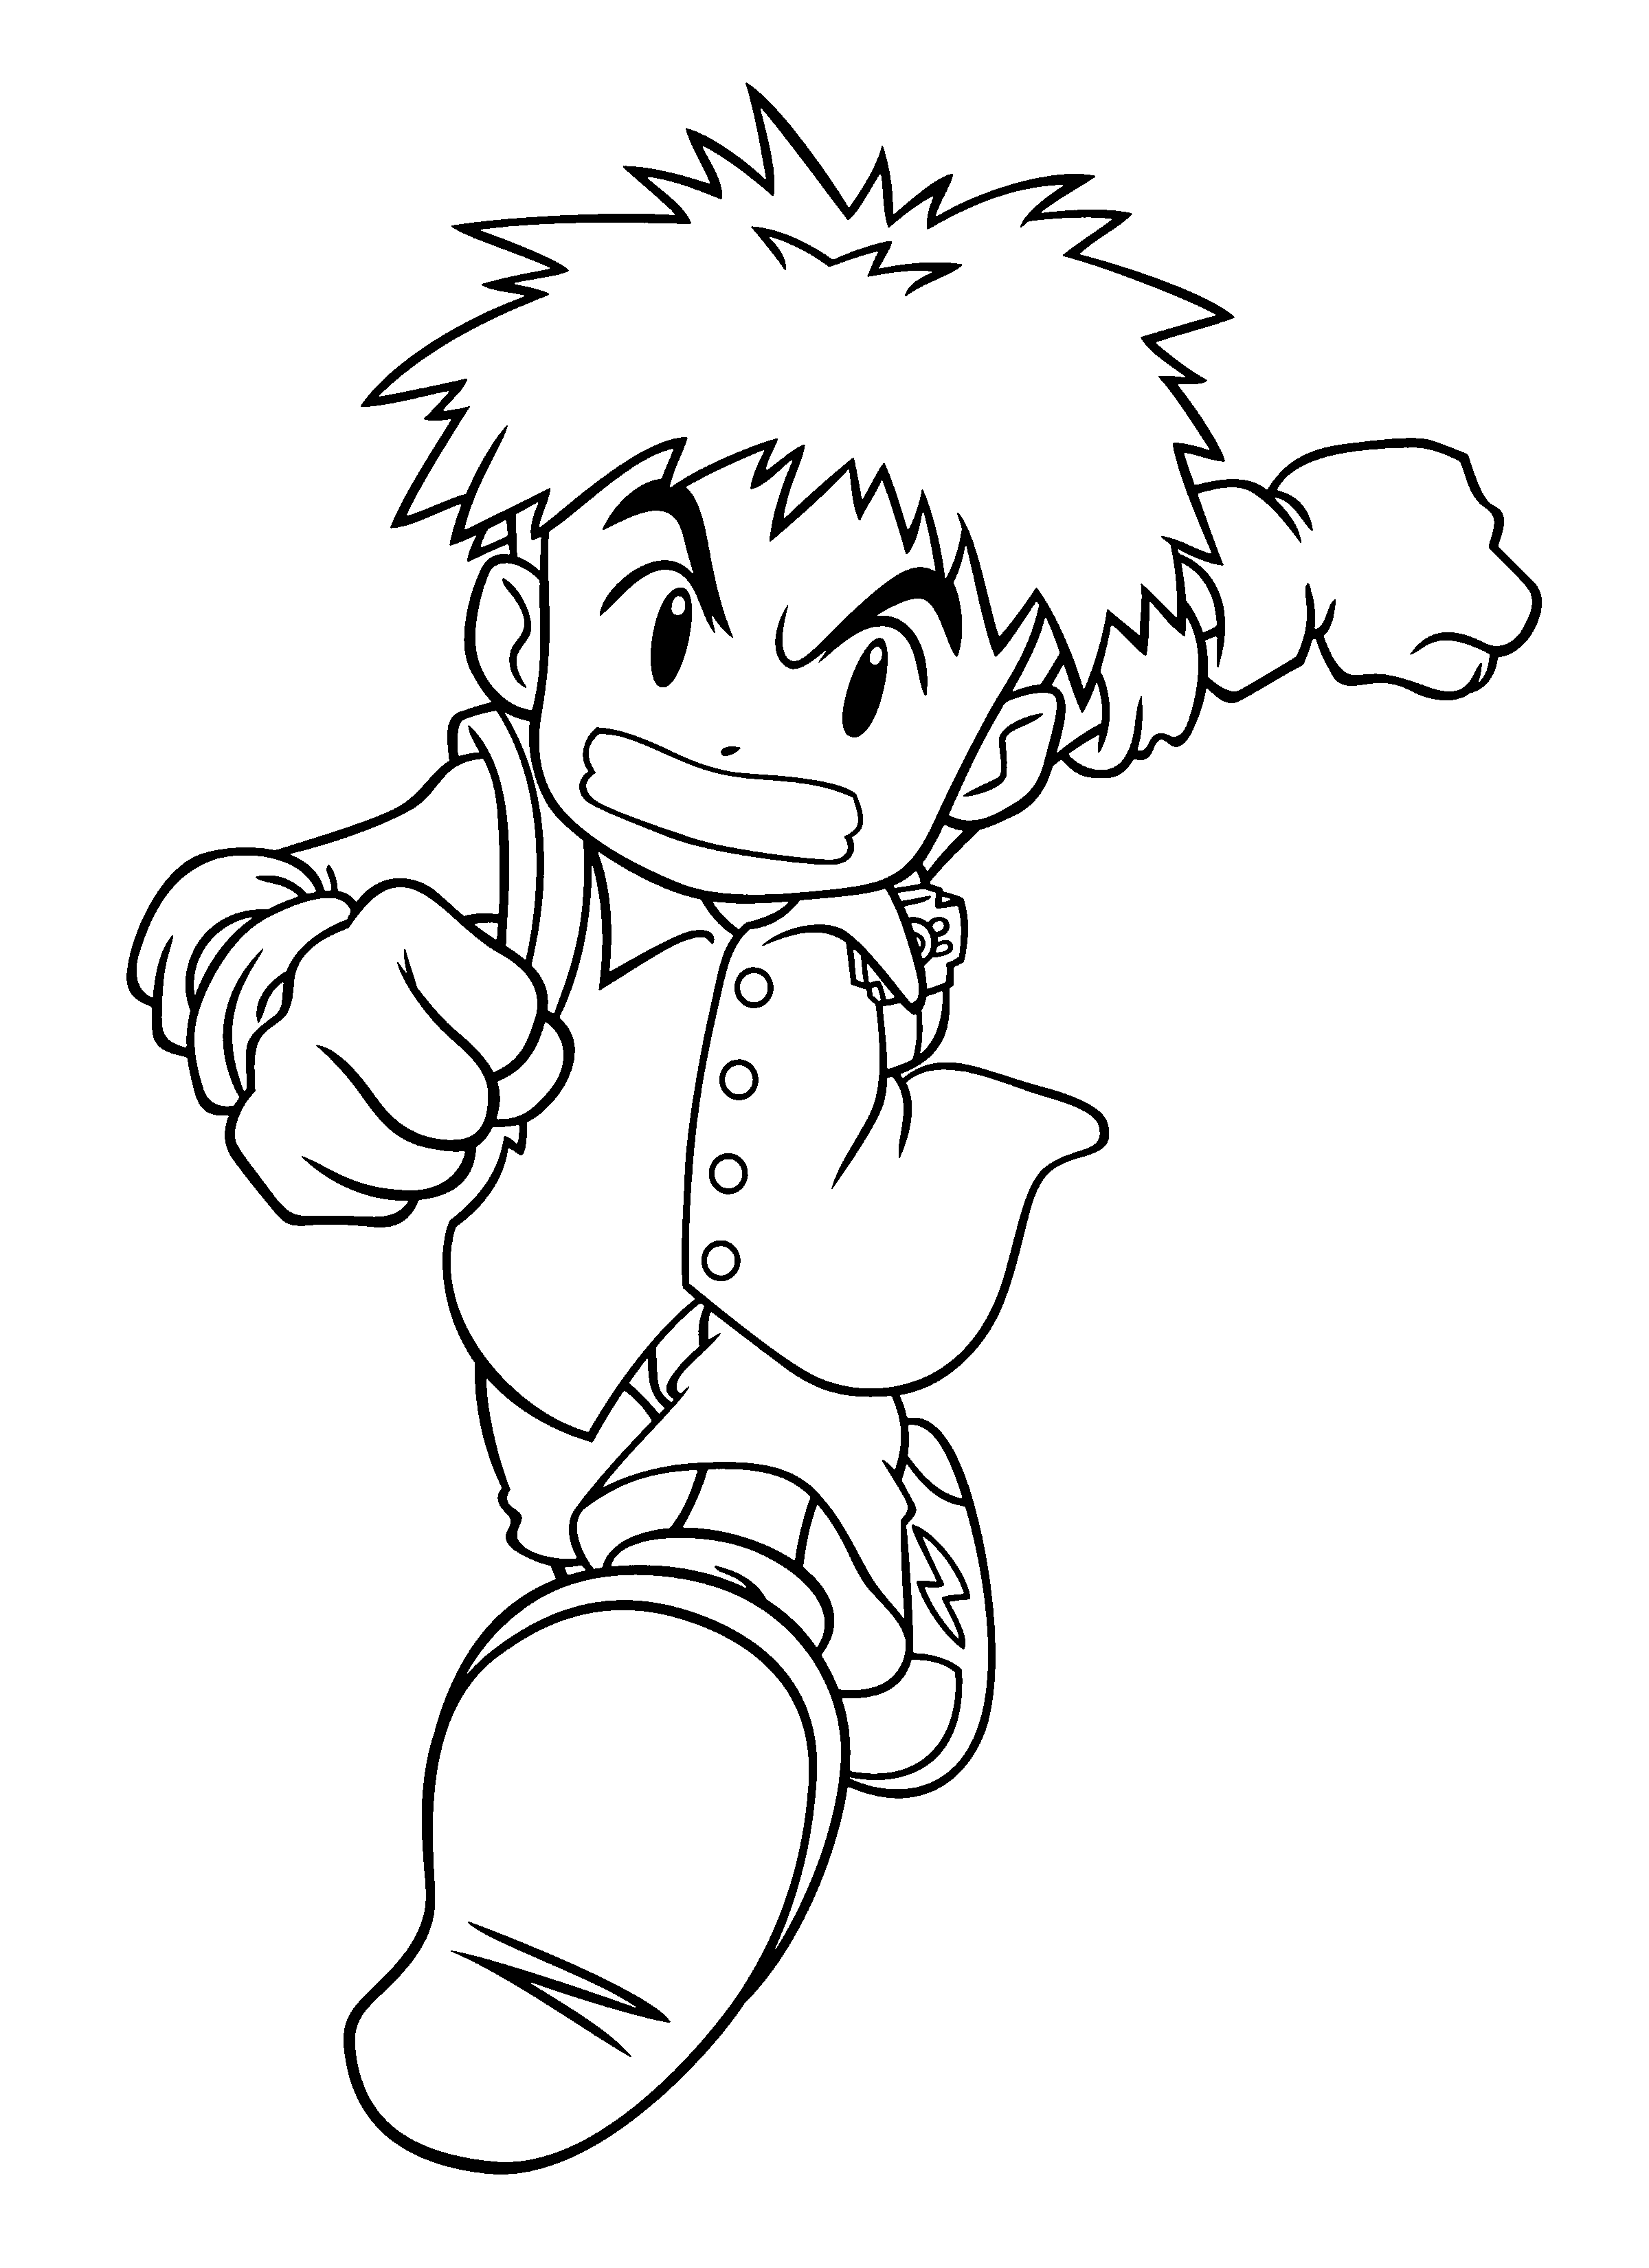 digmon coloring pages - photo#35